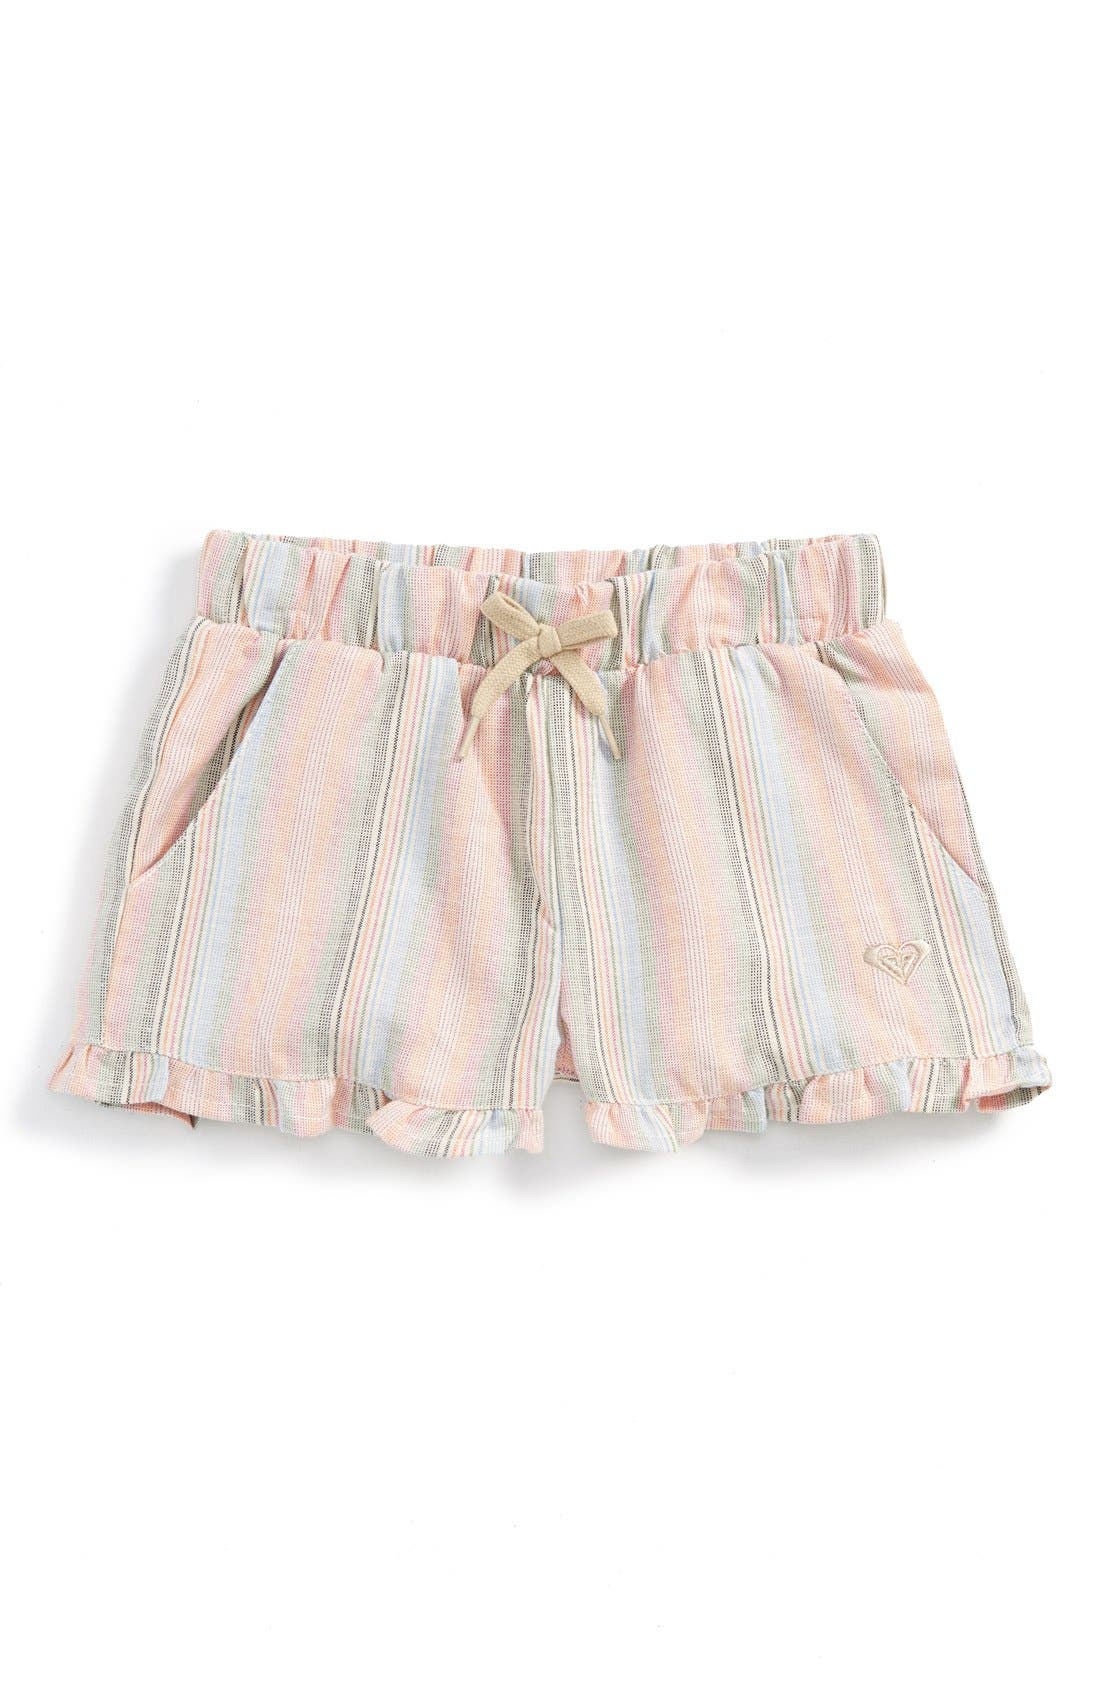 Alternate Image 1 Selected - Roxy 'Ruffled Feathers' Stripe Shorts (Baby Girls)